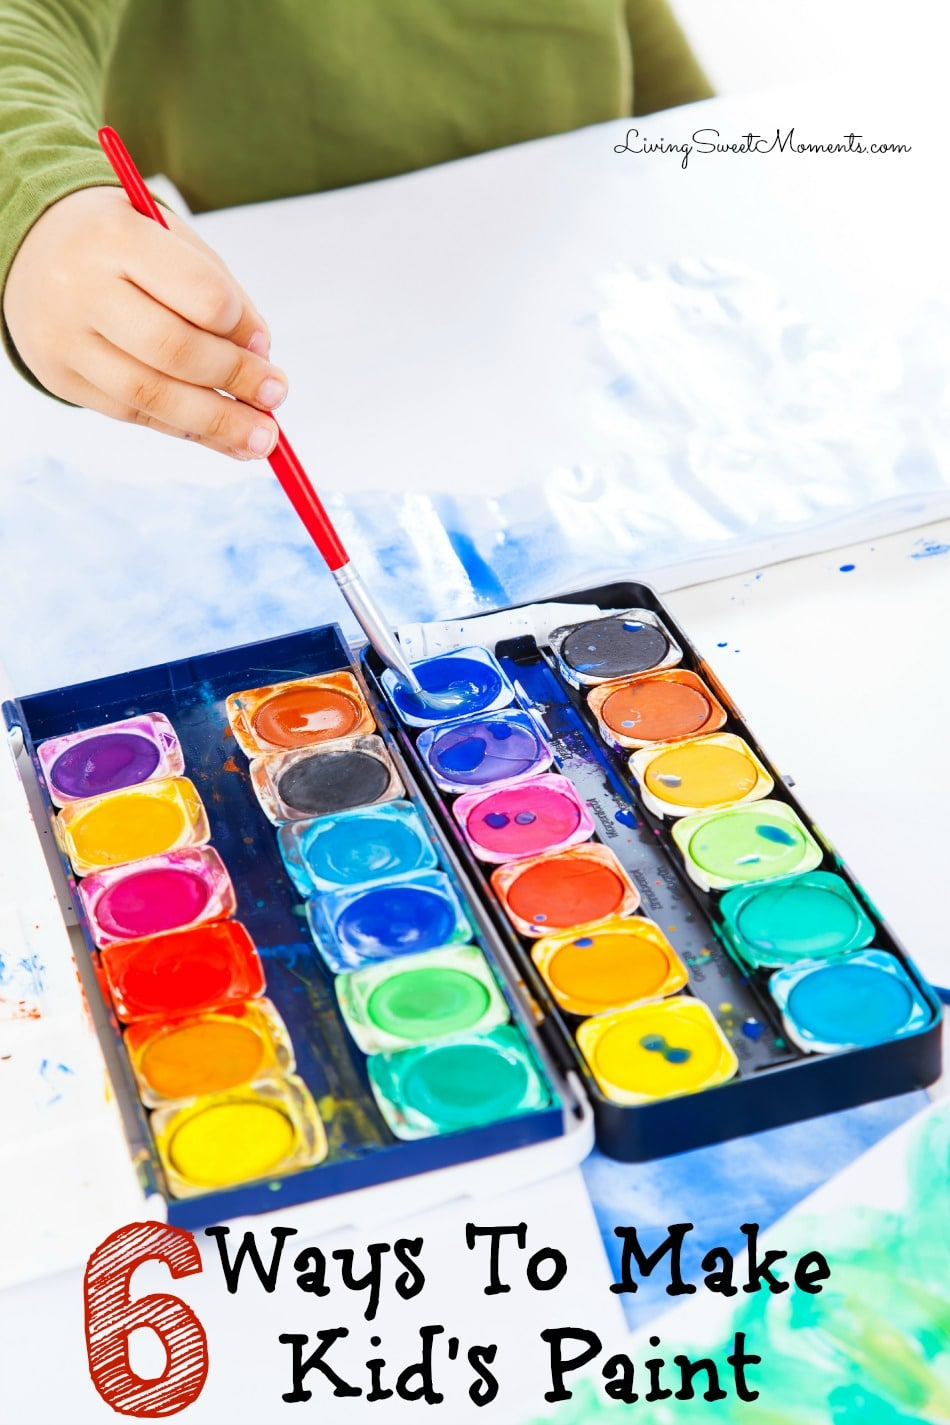 ways-to-make-kids-paint